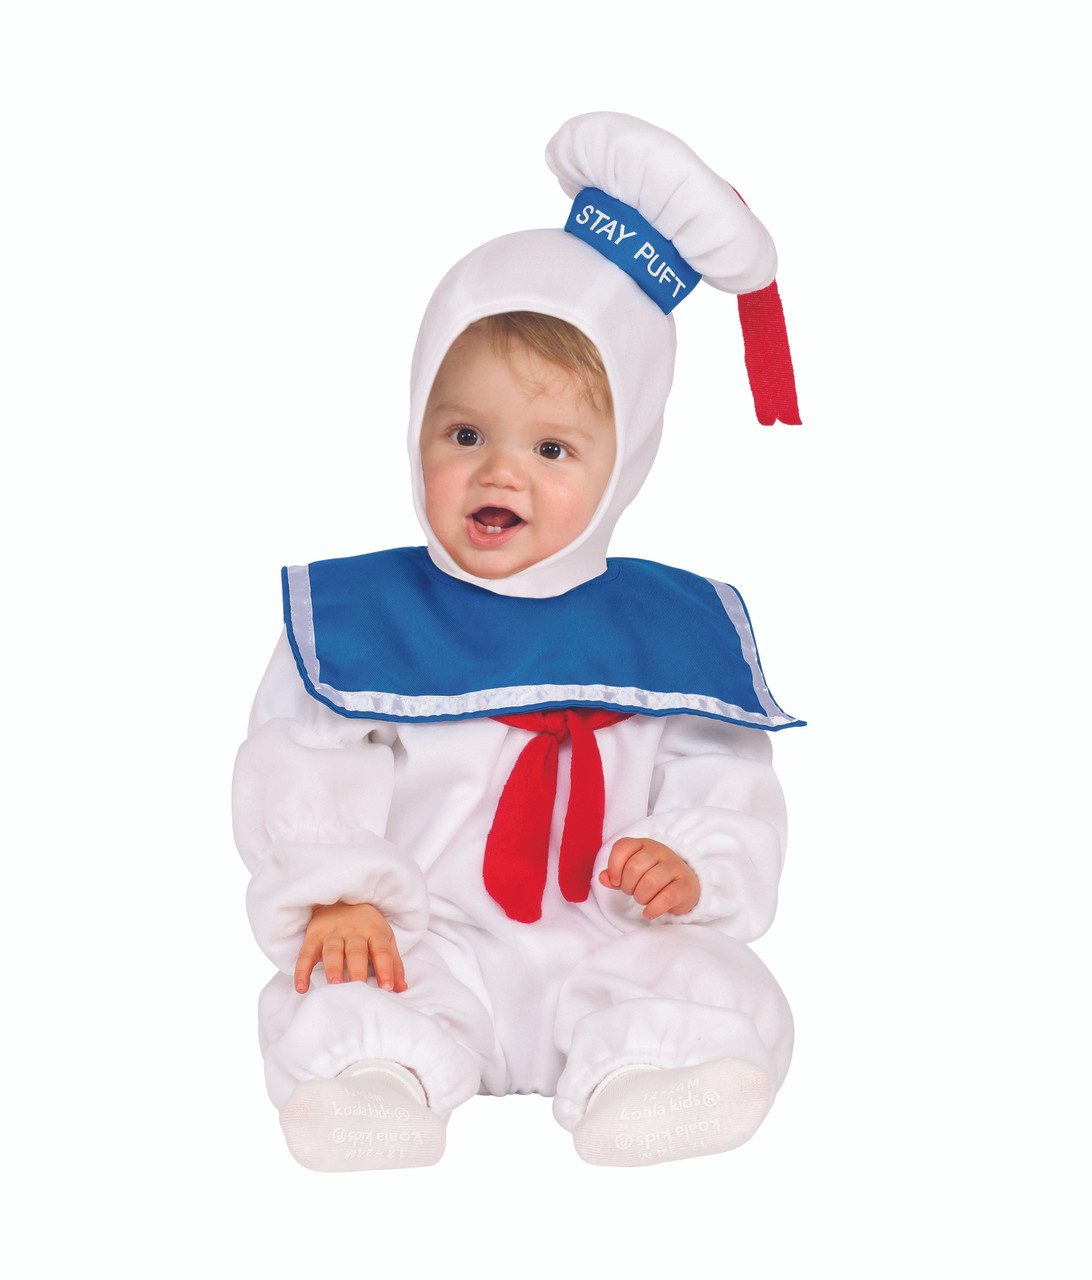 Stay Puft Marshmallow Man Ghostbusters Toddler Costume